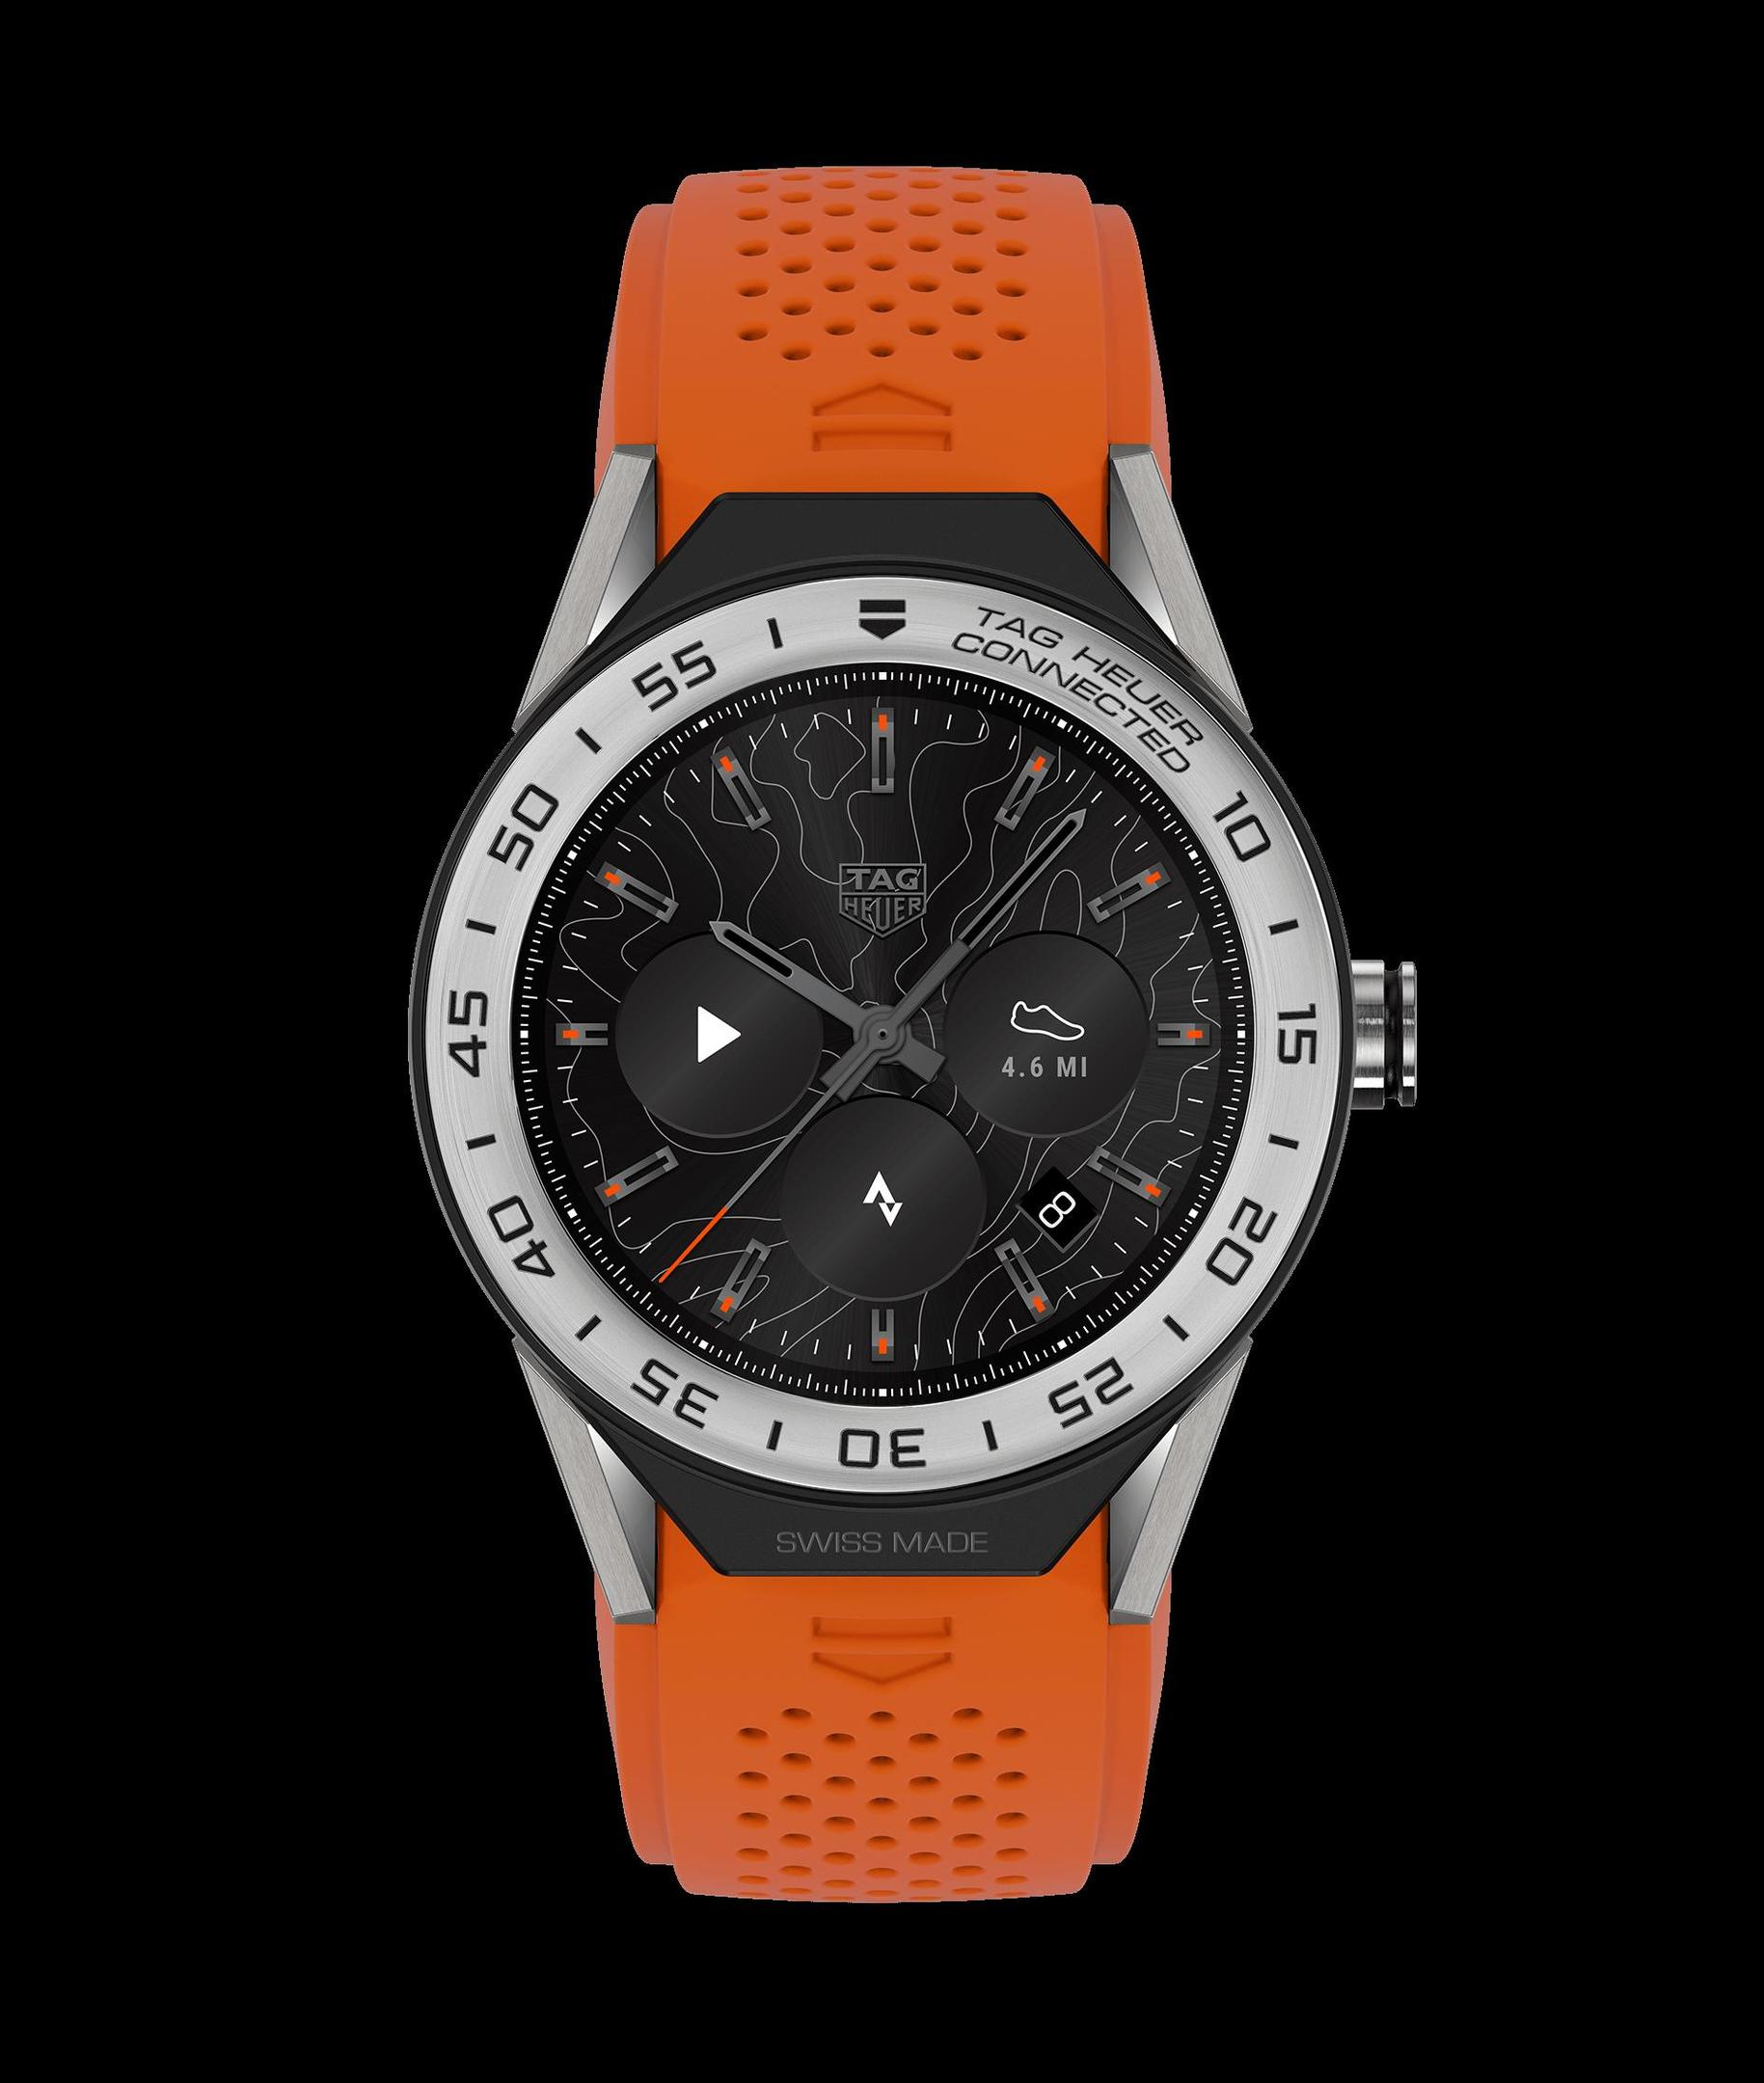 Win a Tag Heuer connected watch